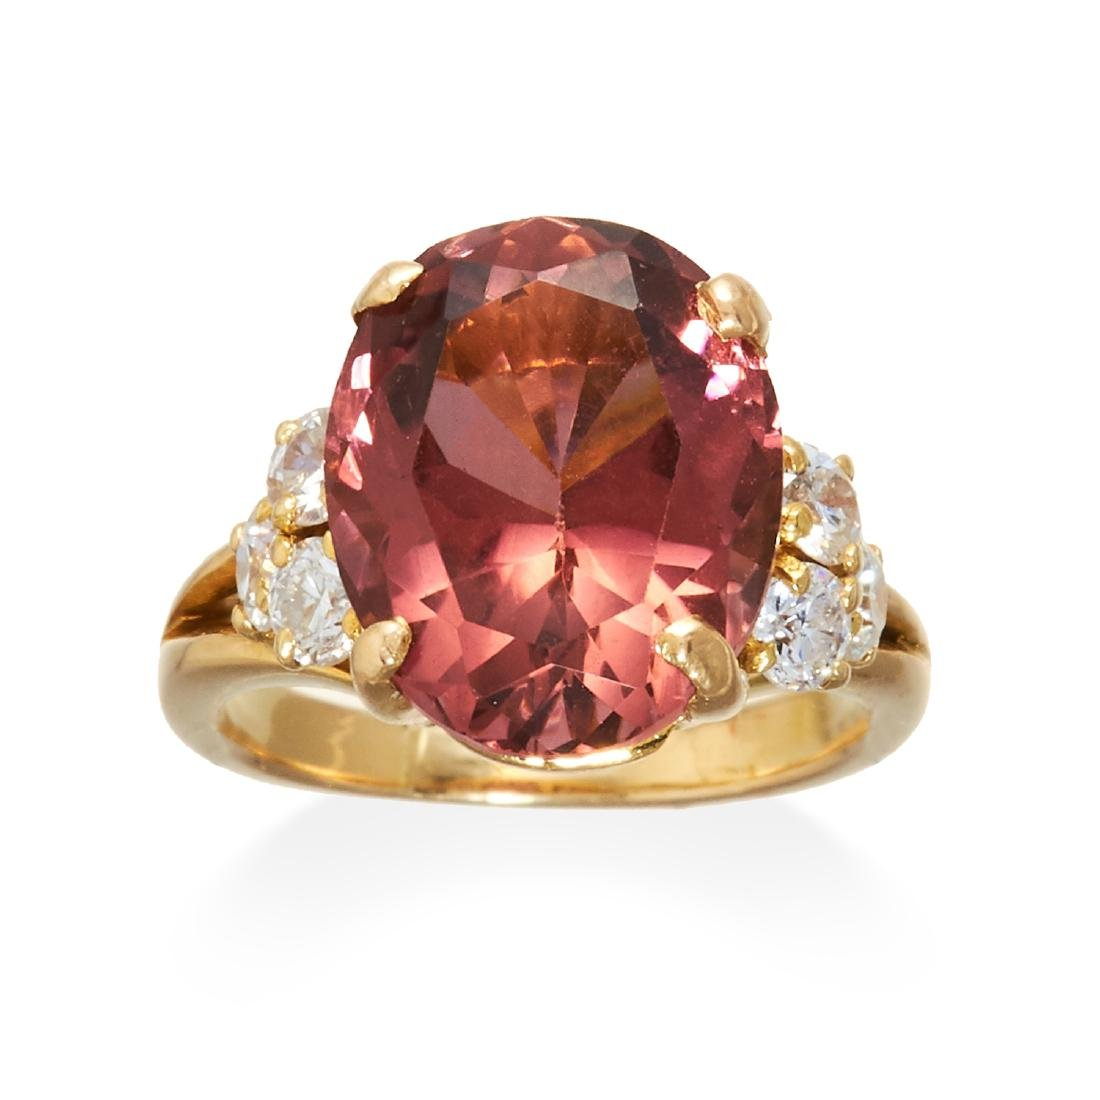 A TOURMALINE AND DIAMOND DRESS RING in yellow gold,